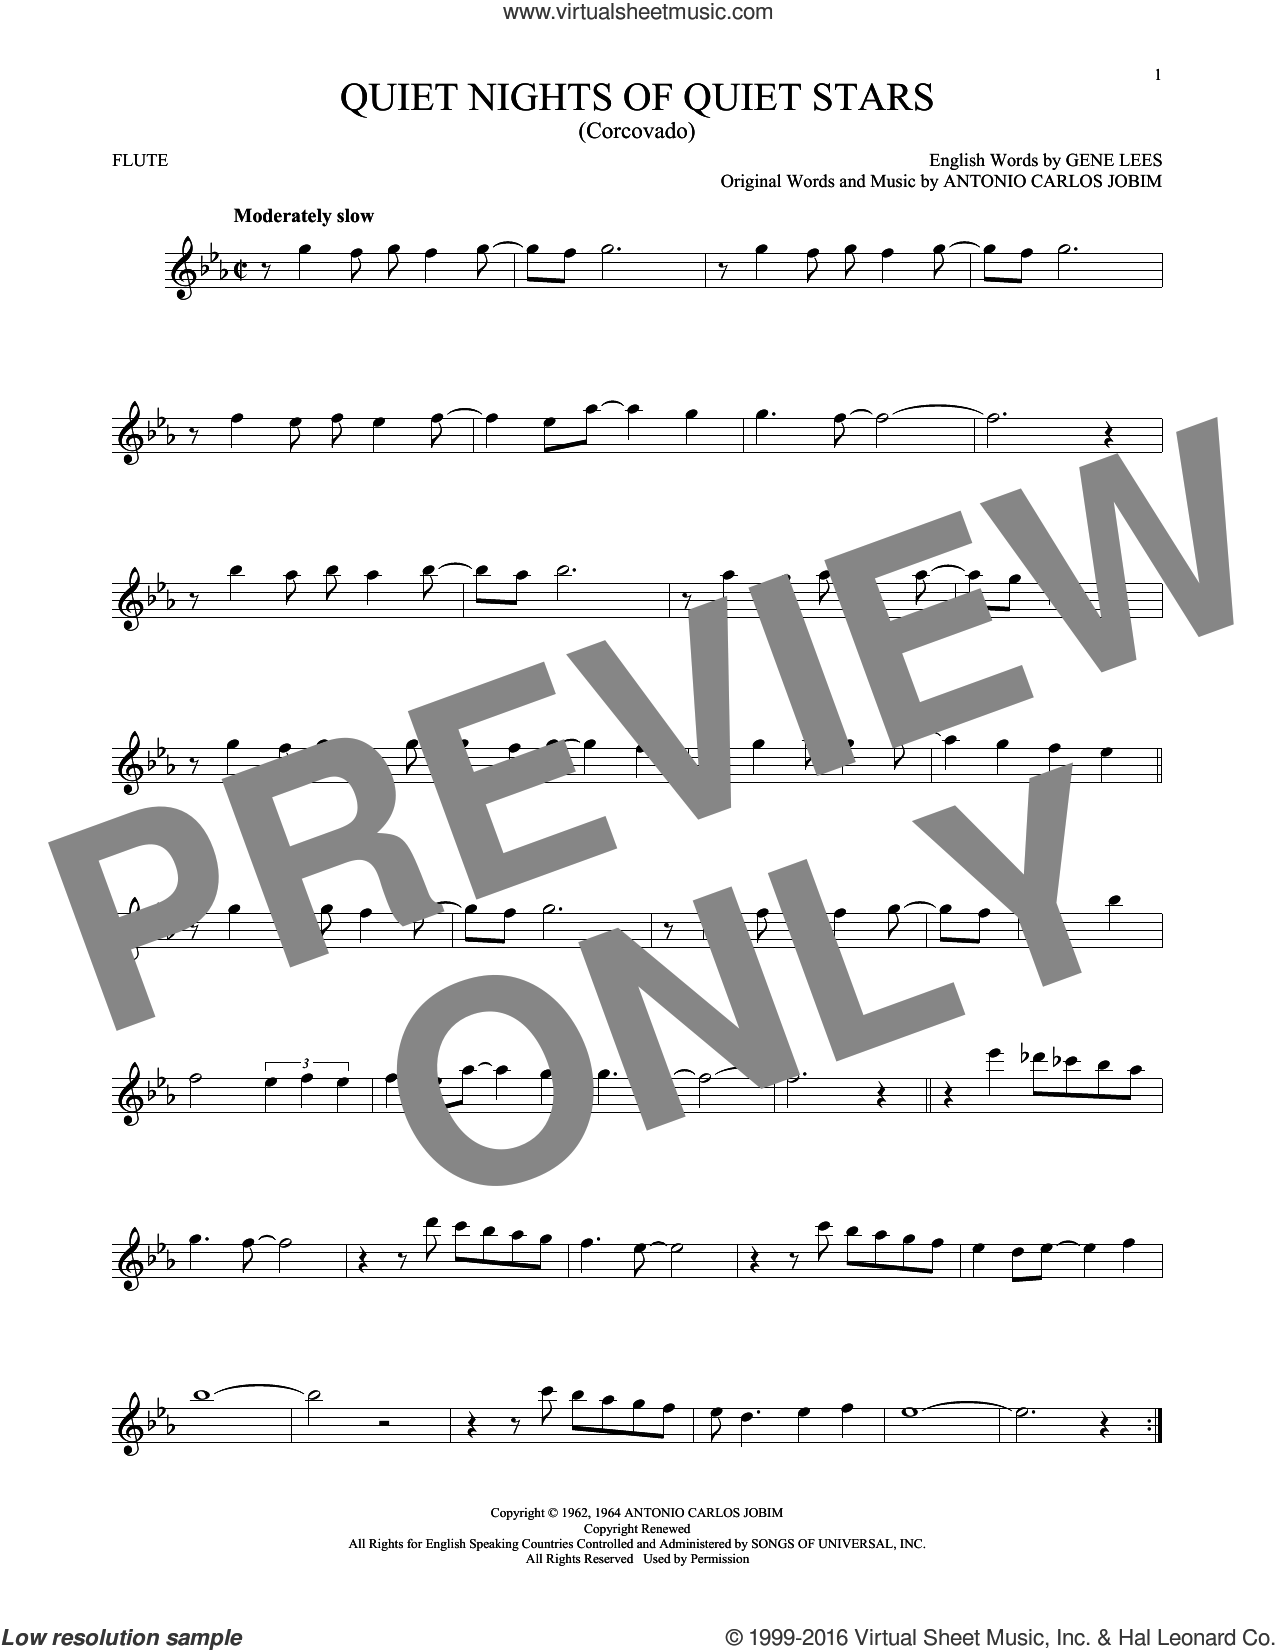 Quiet Nights Of Quiet Stars (Corcovado) sheet music for flute solo by Andy Williams, Antonio Carlos Jobim and Eugene John Lees, intermediate skill level